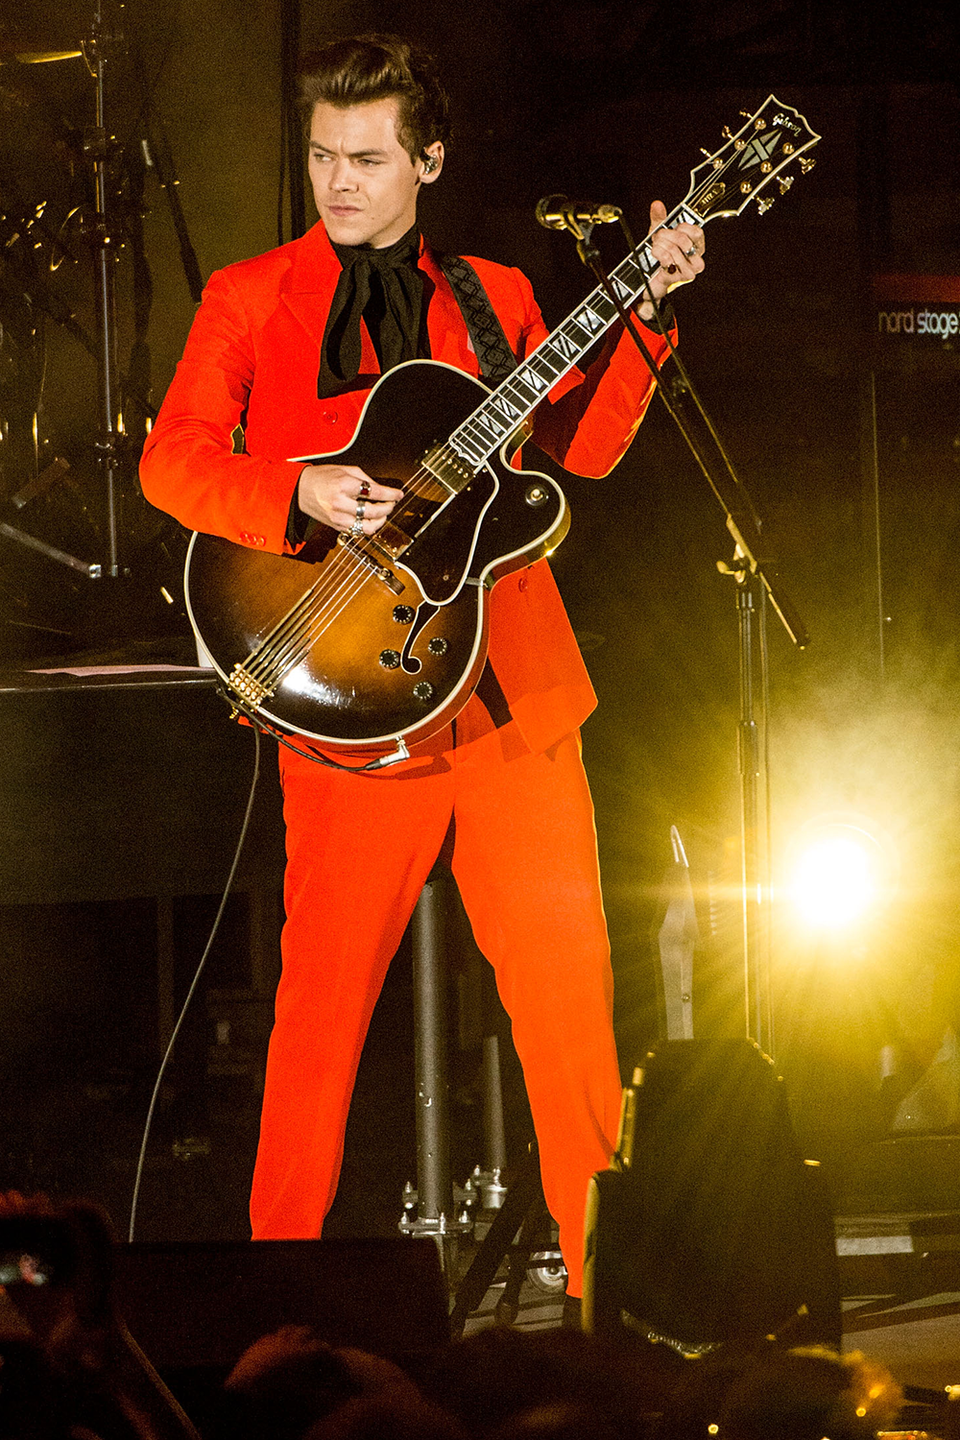 <p>Harry wore this bright red artwork while performing at a benefit concert in Hollywood. Oh look—he's shining so bright, my eyes have decided to tear up for me. :')</p>